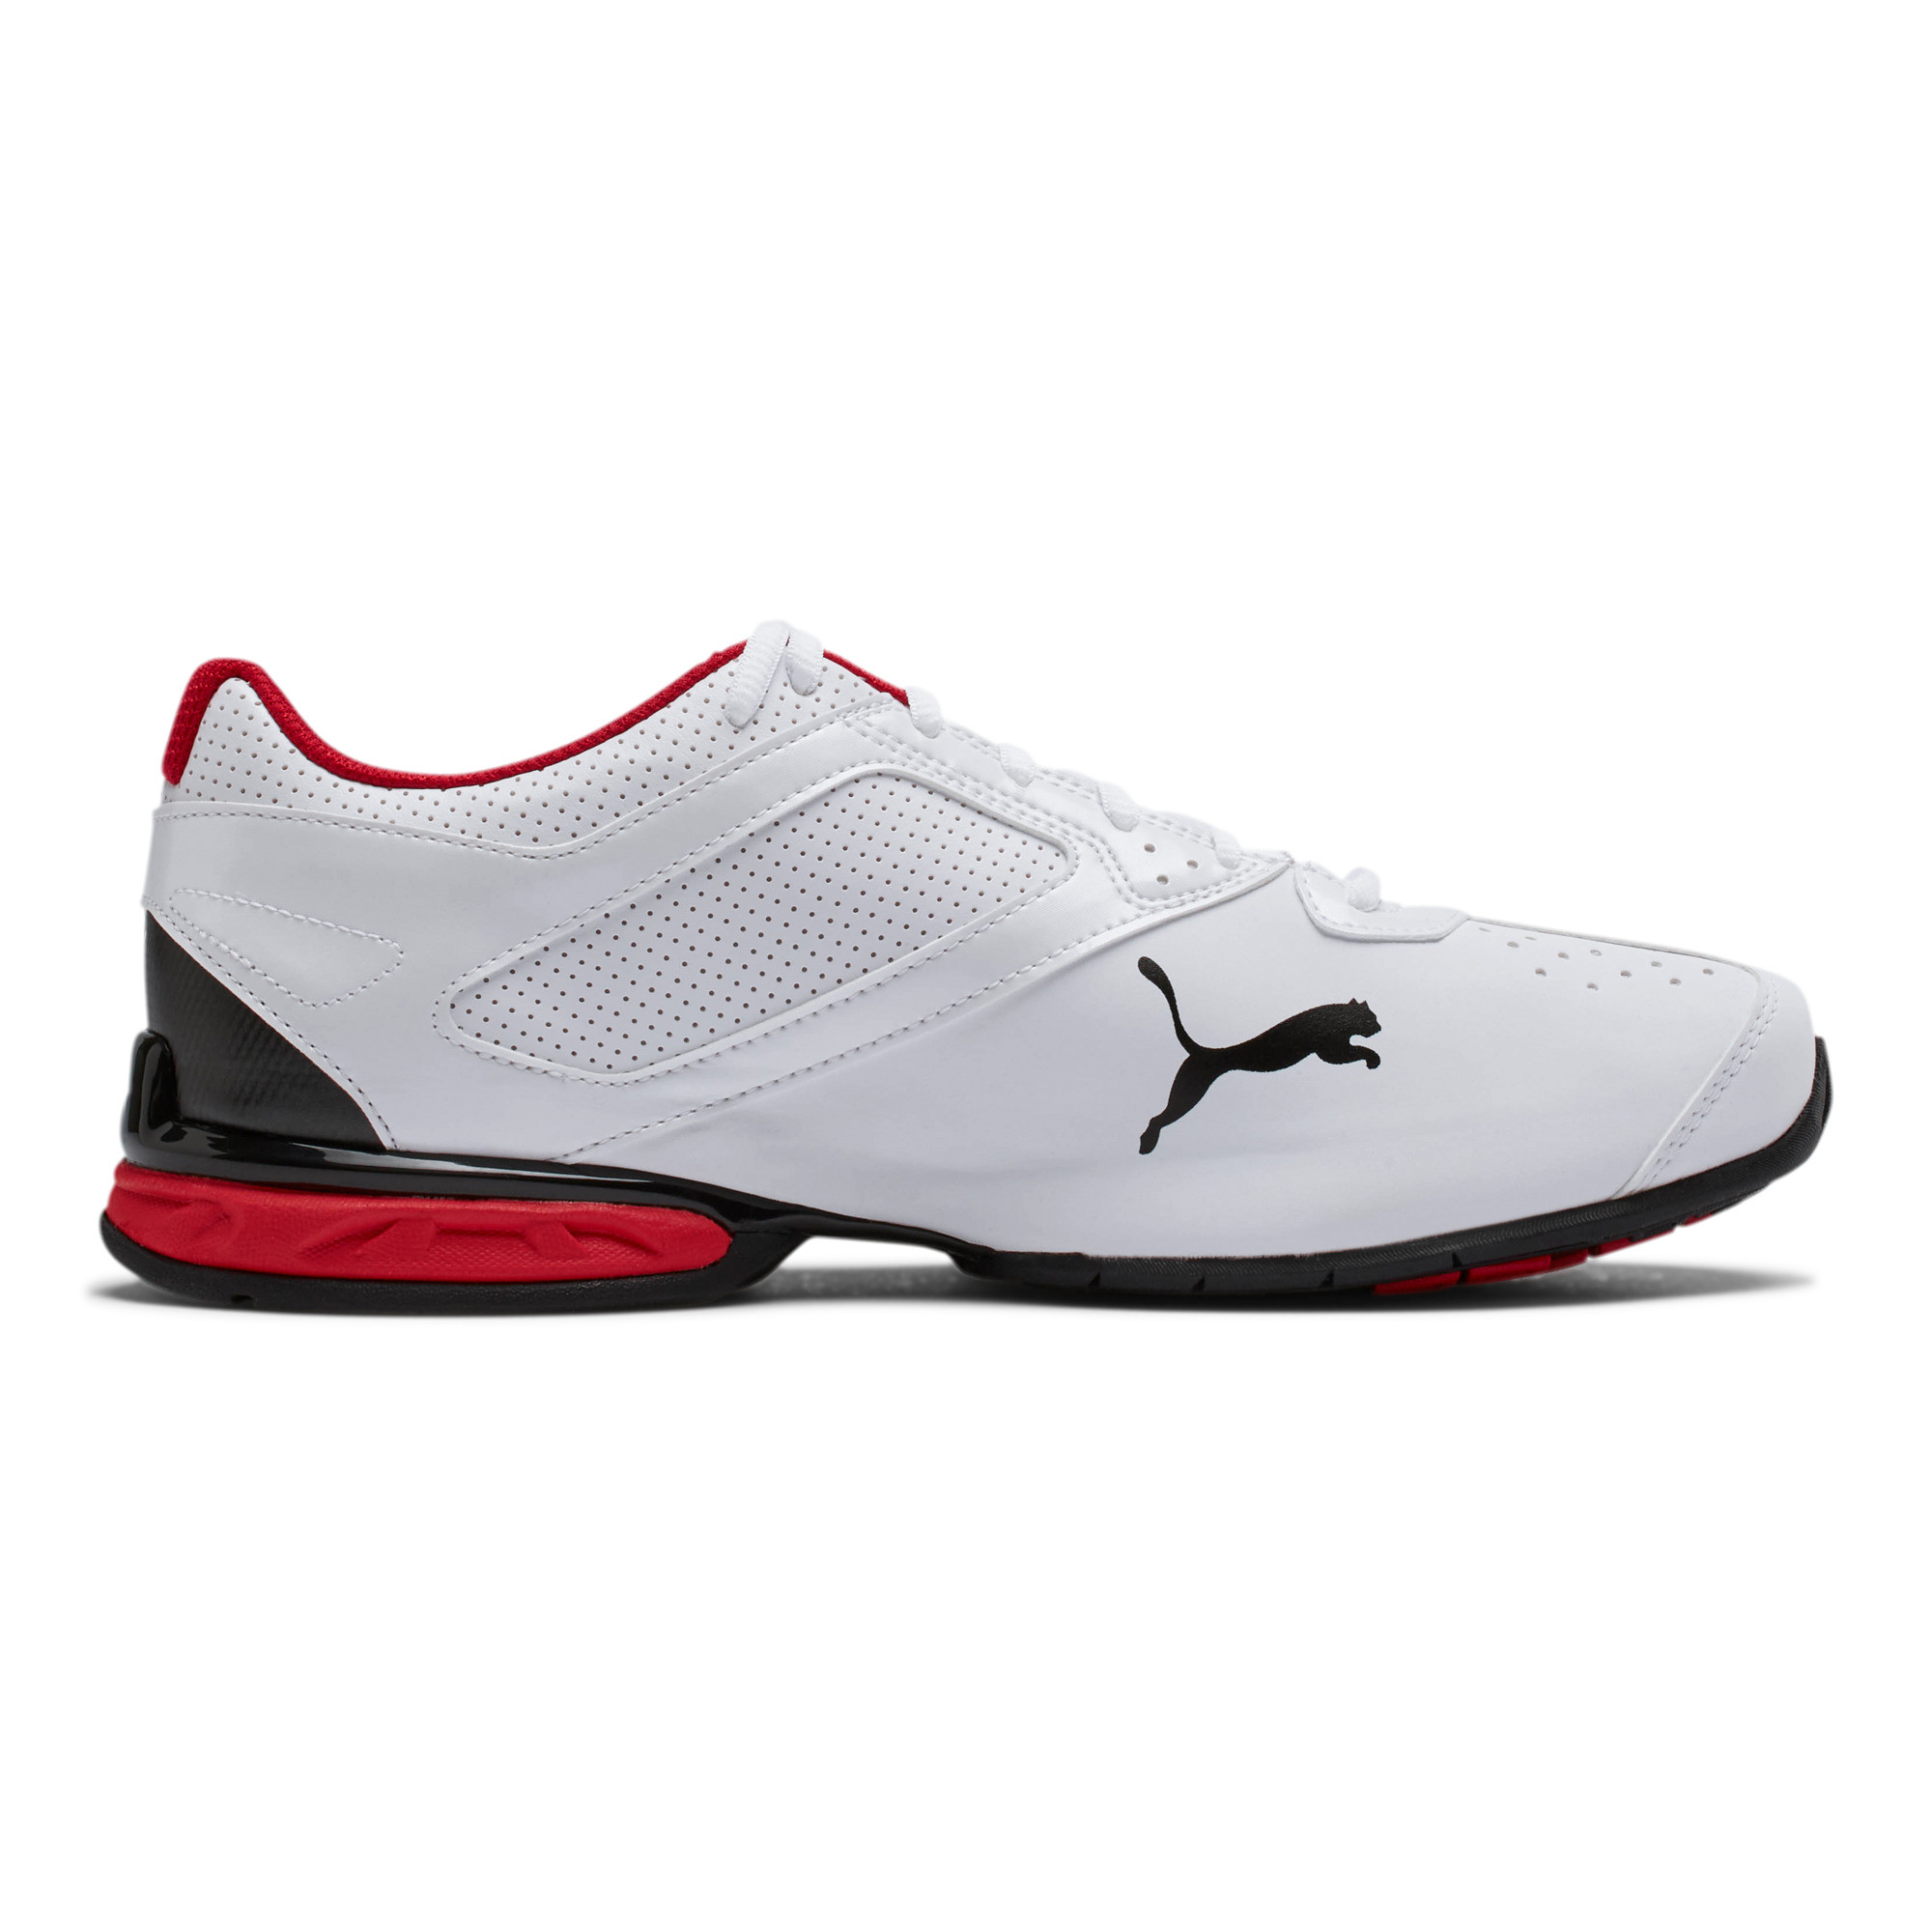 PUMA-Tazon-6-FM-Men-039-s-Sneakers-Men-Shoe-Running thumbnail 20